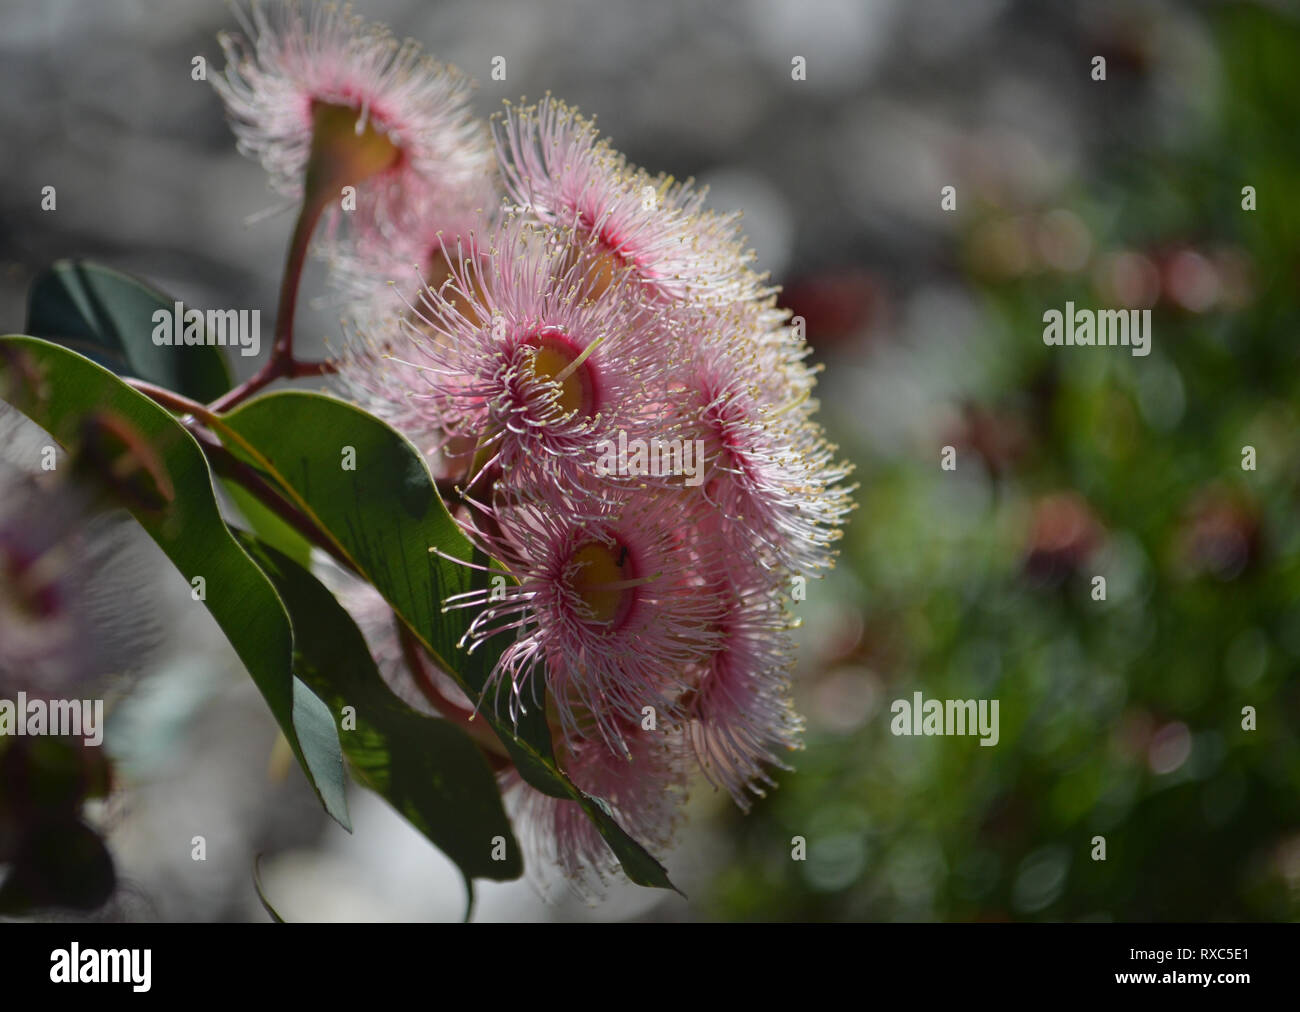 Pale pink blossoms of an Australian native Corymbia flowering gum tree, family Myrtaceae. Endemic to Western Australia - Stock Image